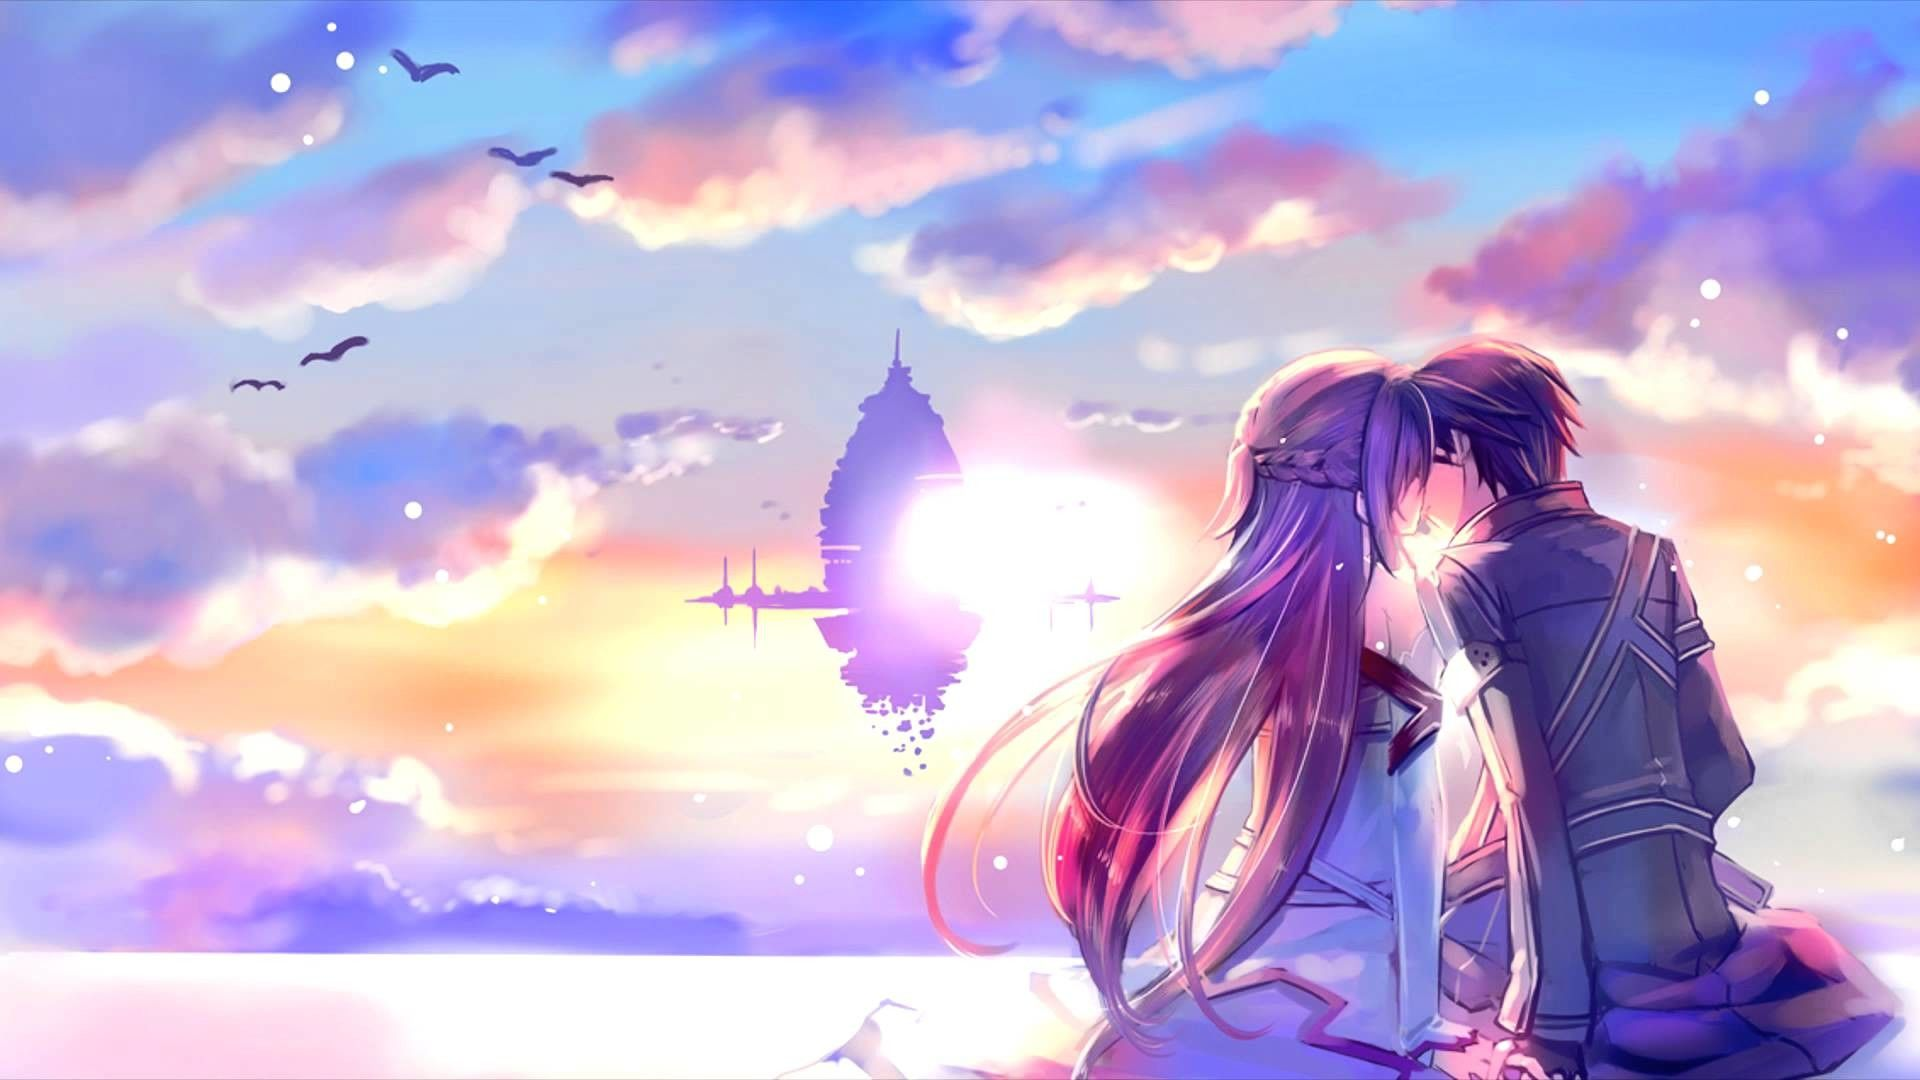 1920x1080 Romantic Anime Wallpapers (64+ images)